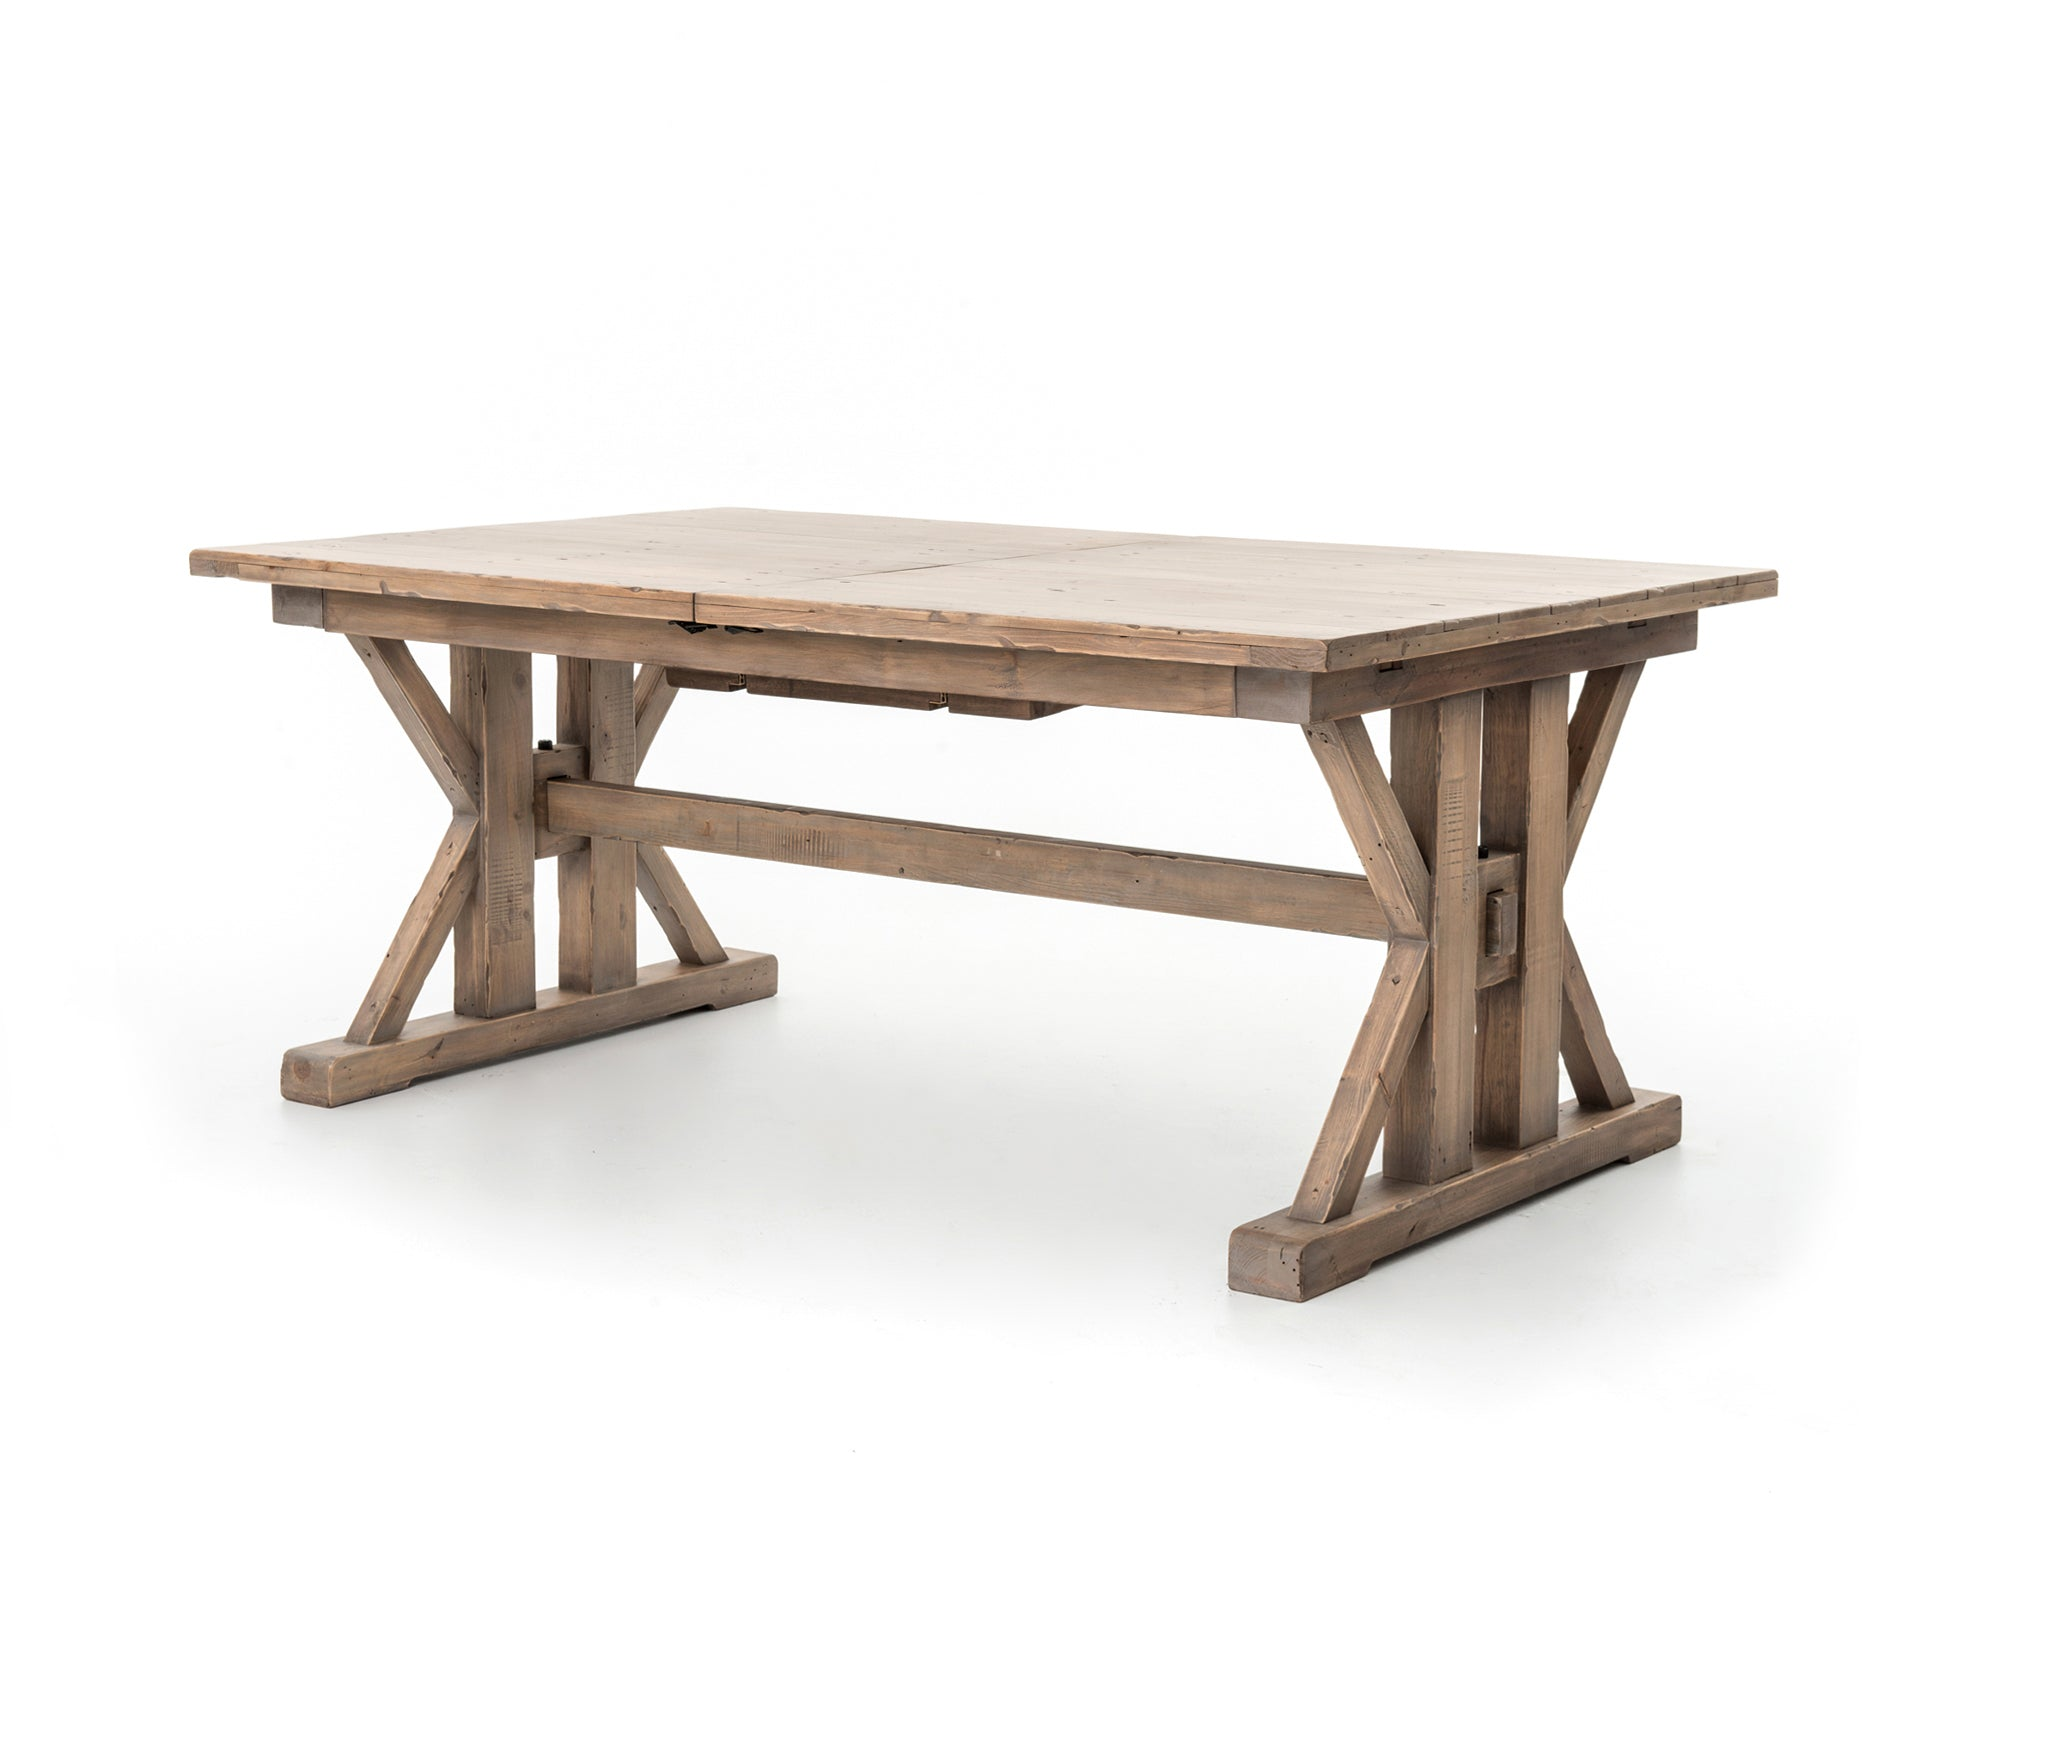 Italian Farmhouse Dining Extension Table